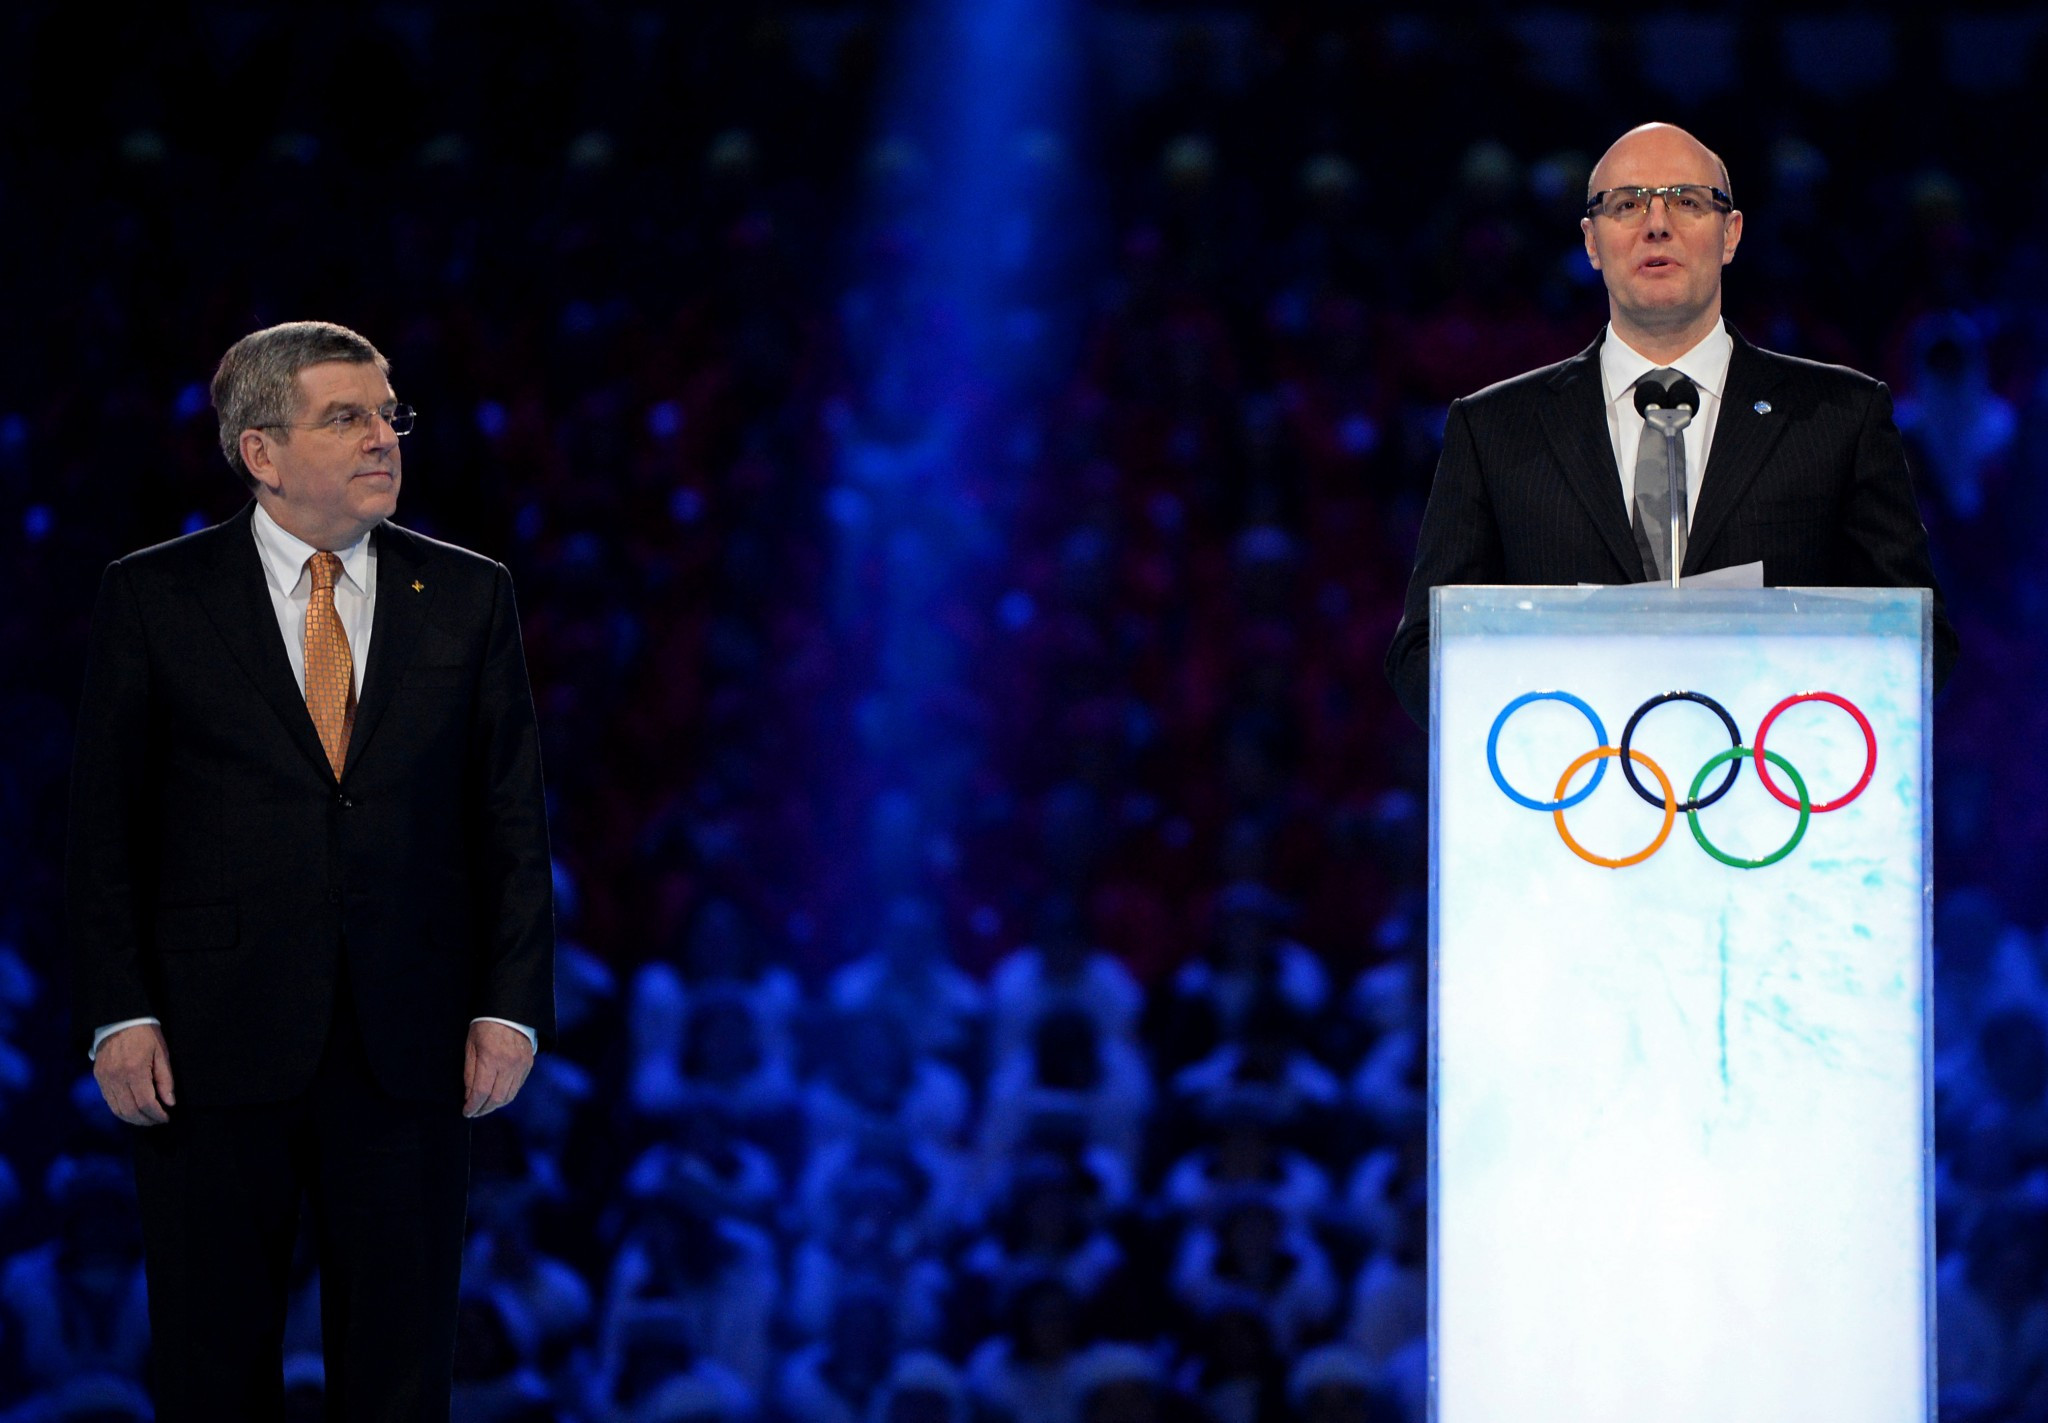 IOC President Thomas Bach, left, pictured at the Opening Ceremony of Sochi 2014 ©Getty Images